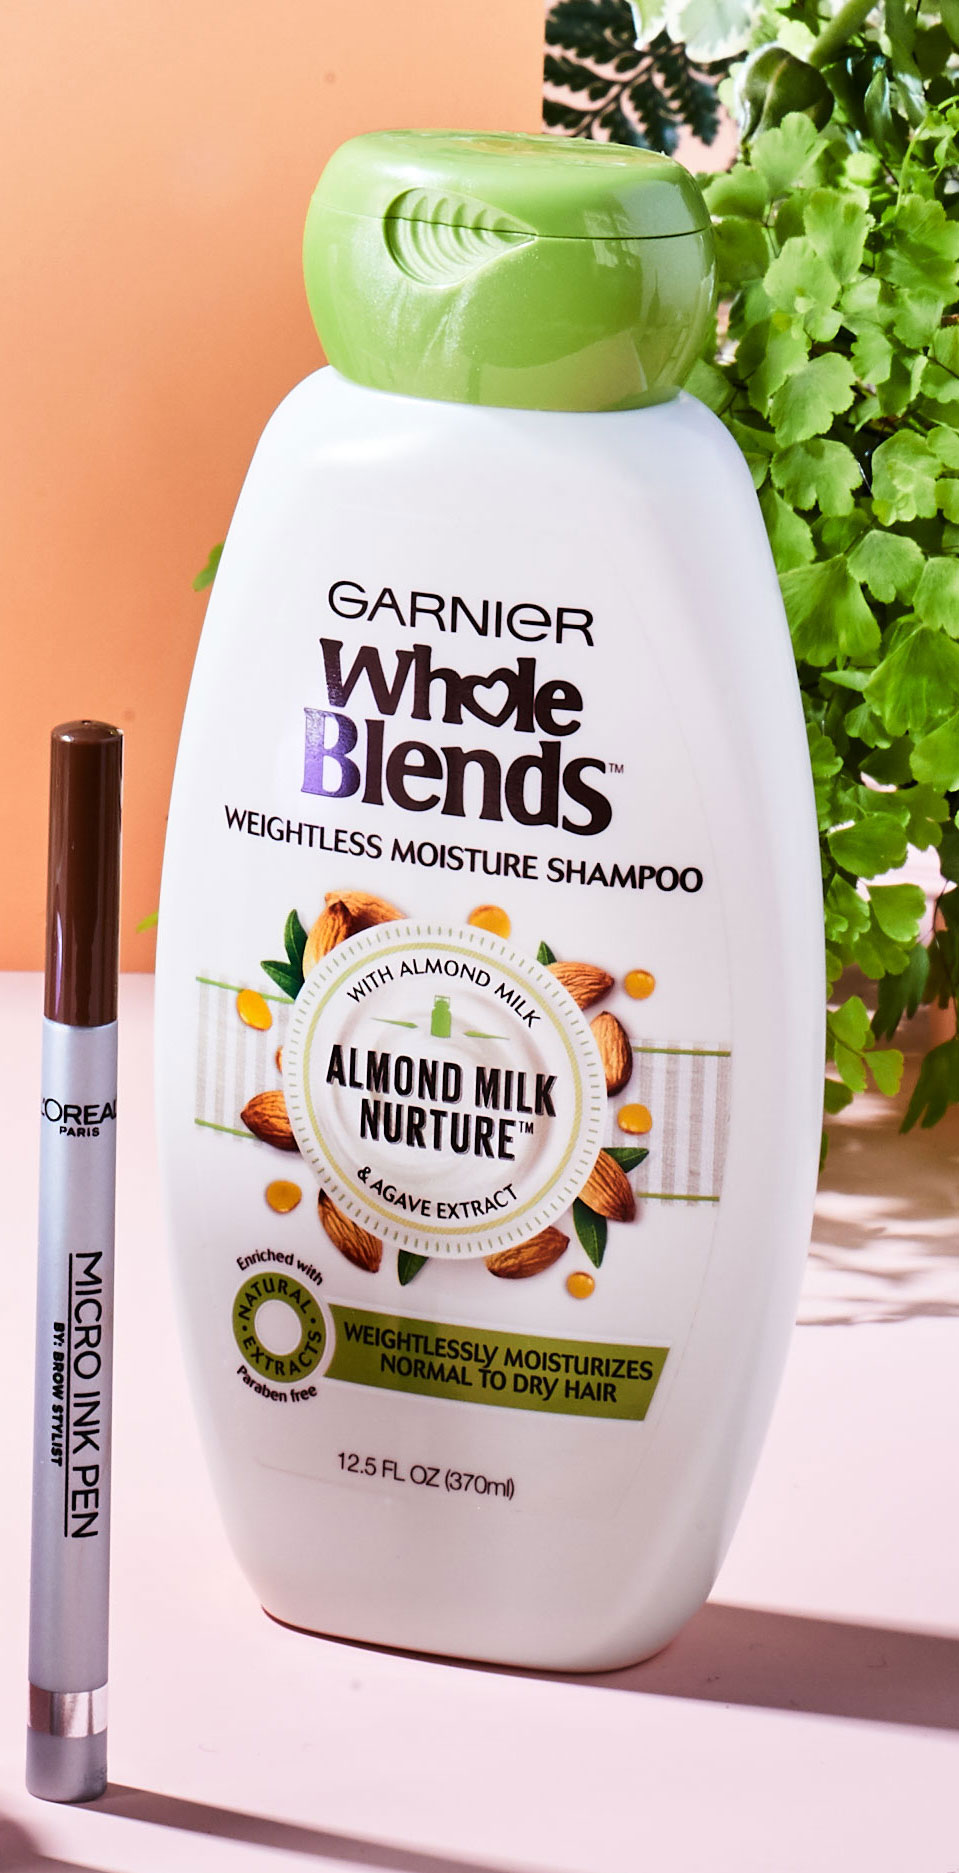 Garnier Whole Blends Almond Milk Nurture Shampoo